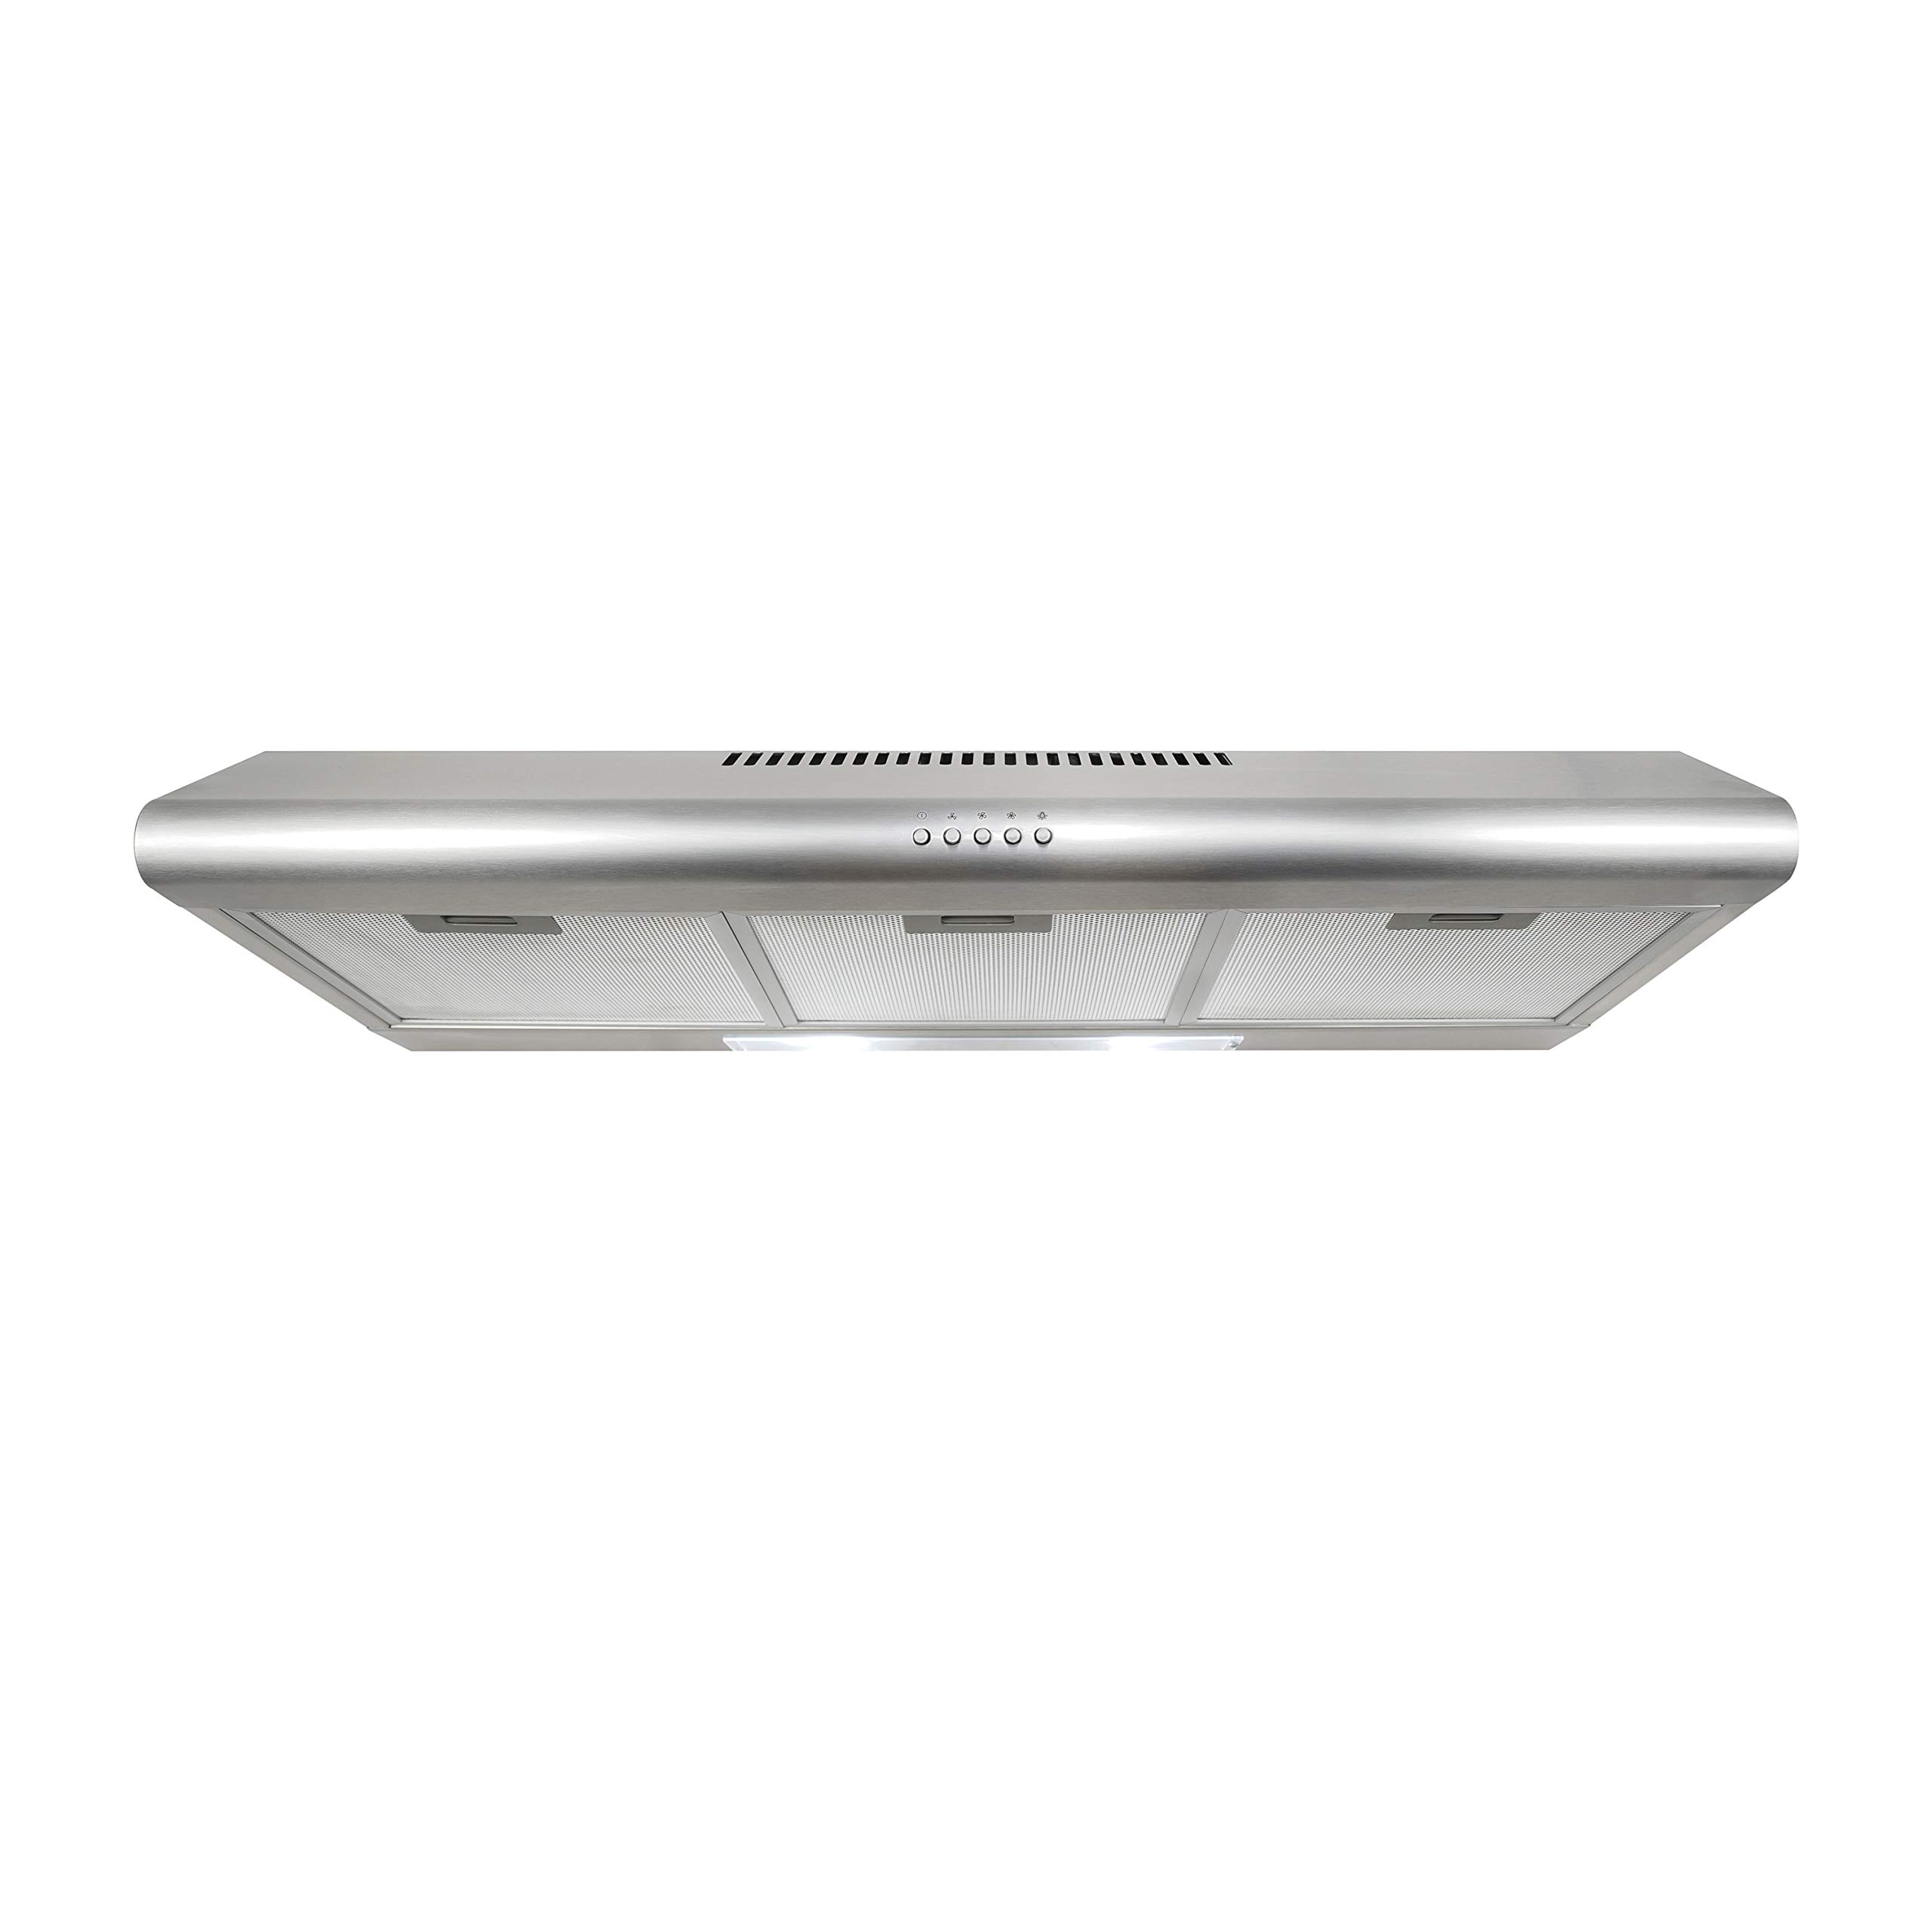 Cosmo 5MU36 36-in Under-Cabinet Range-Hood 200-CFM   Ducted / Ductless Convertible Top / Rear Duct , Slim Kitchen Stove Vent with LED Lights, 3 Exhaust Fan Speeds, Reusable Filters (Stainless Steel)